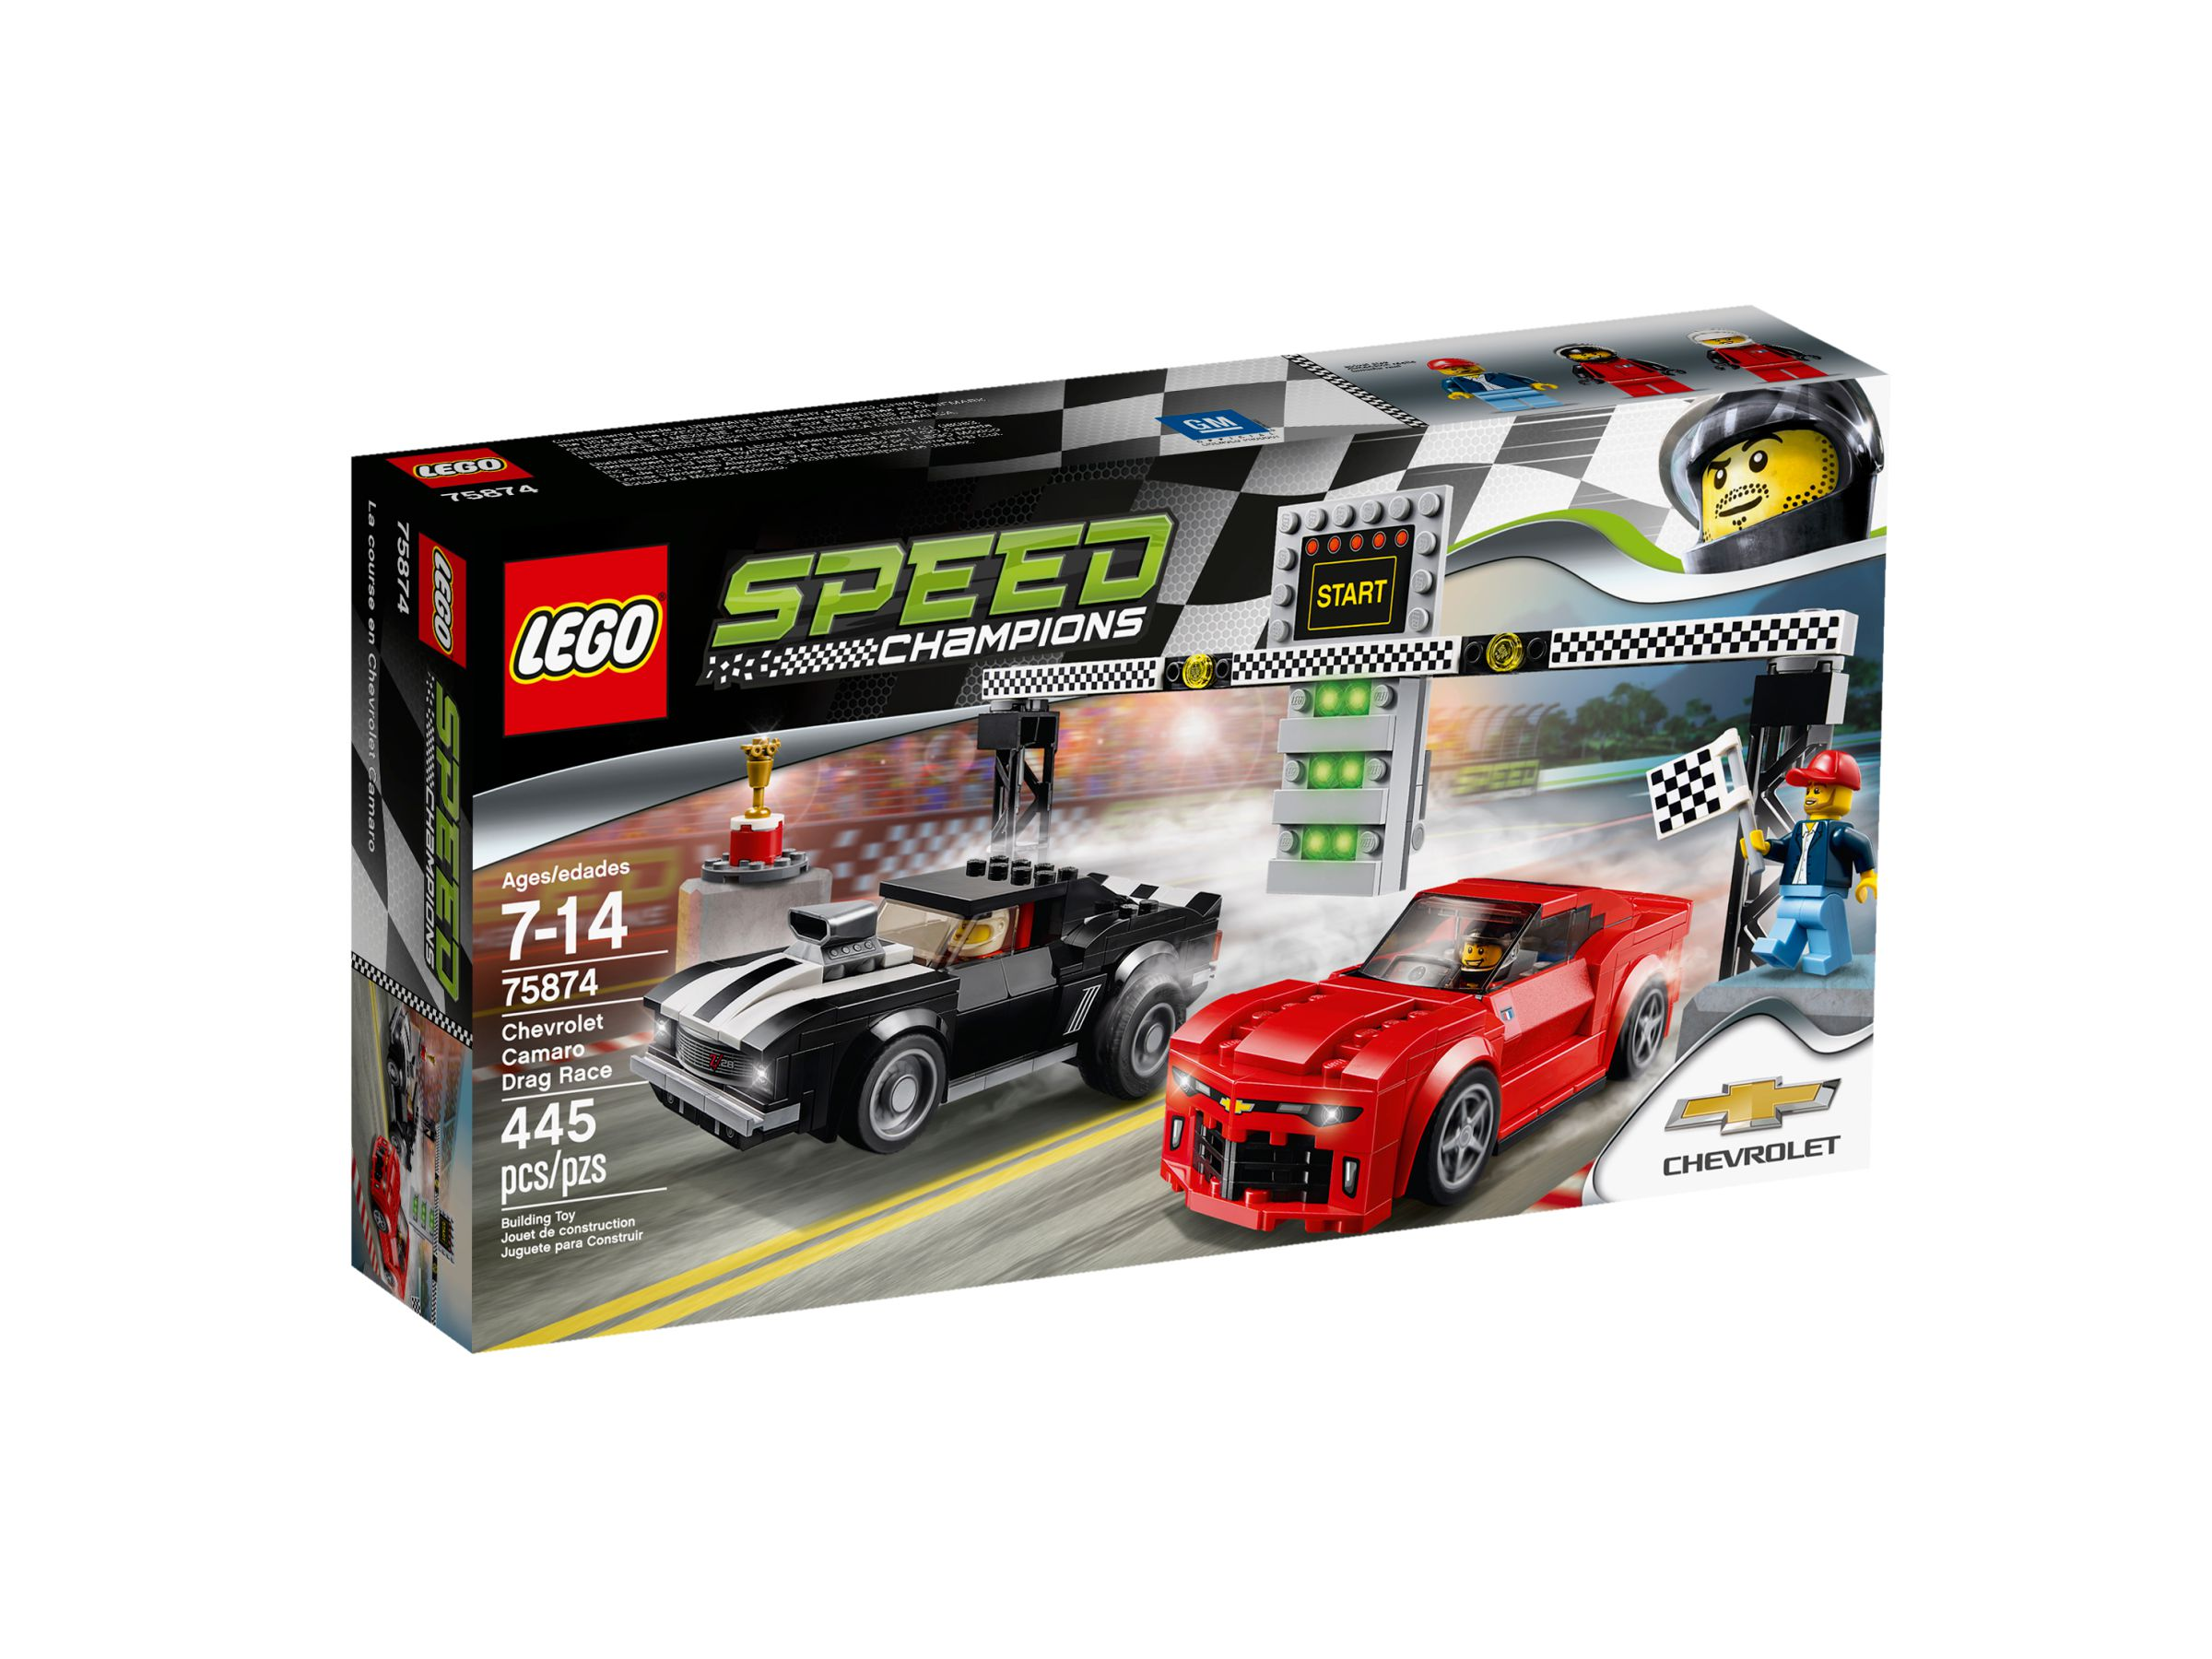 lego 75874 chevrolet camaro drag race speed champions 2016 brickmerge. Black Bedroom Furniture Sets. Home Design Ideas